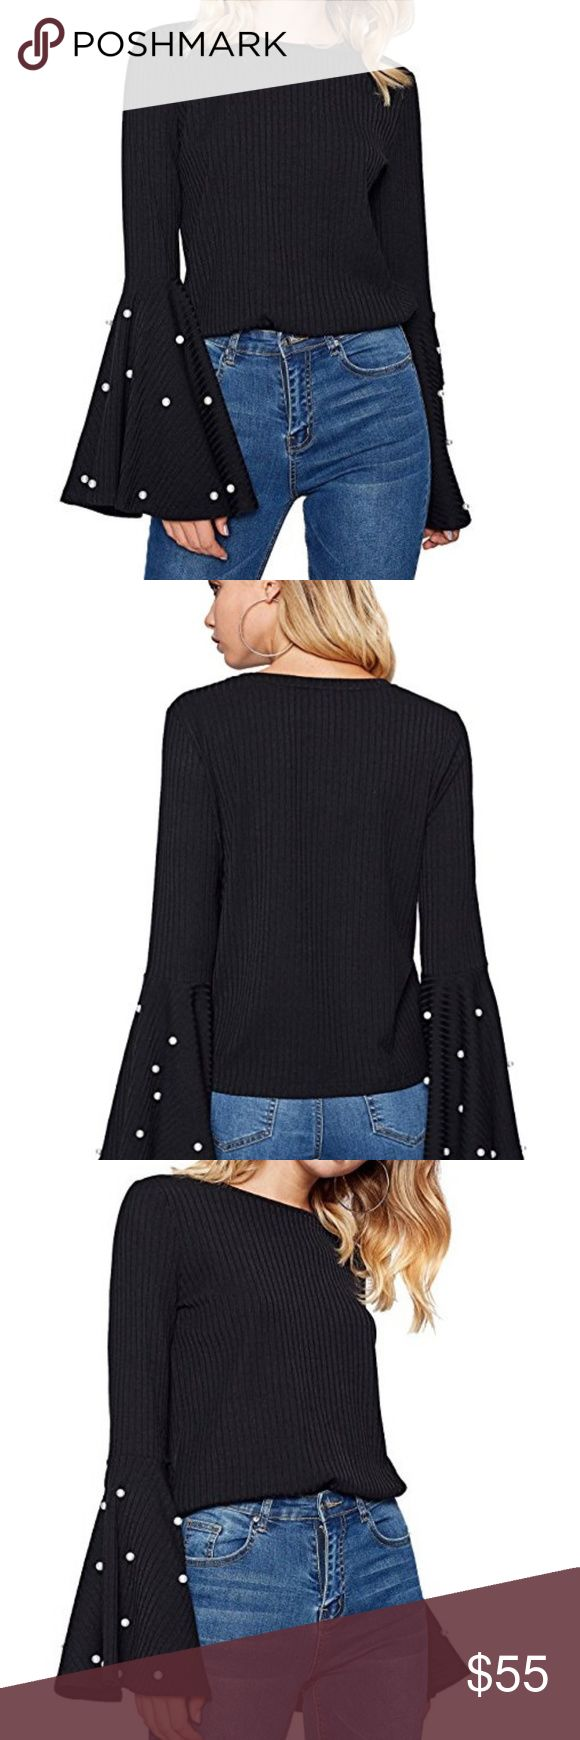 """New! Women's Black Cozy Top Elastic fabric, 35% Cotton. 60% Polyster, 5% Spandex. Round neck, big cuff, beading long sleeve Model is 5'9"""", Bust 31"""", Waist 23"""", Hip 34"""", Wearing size S Xcel Couture Tops"""